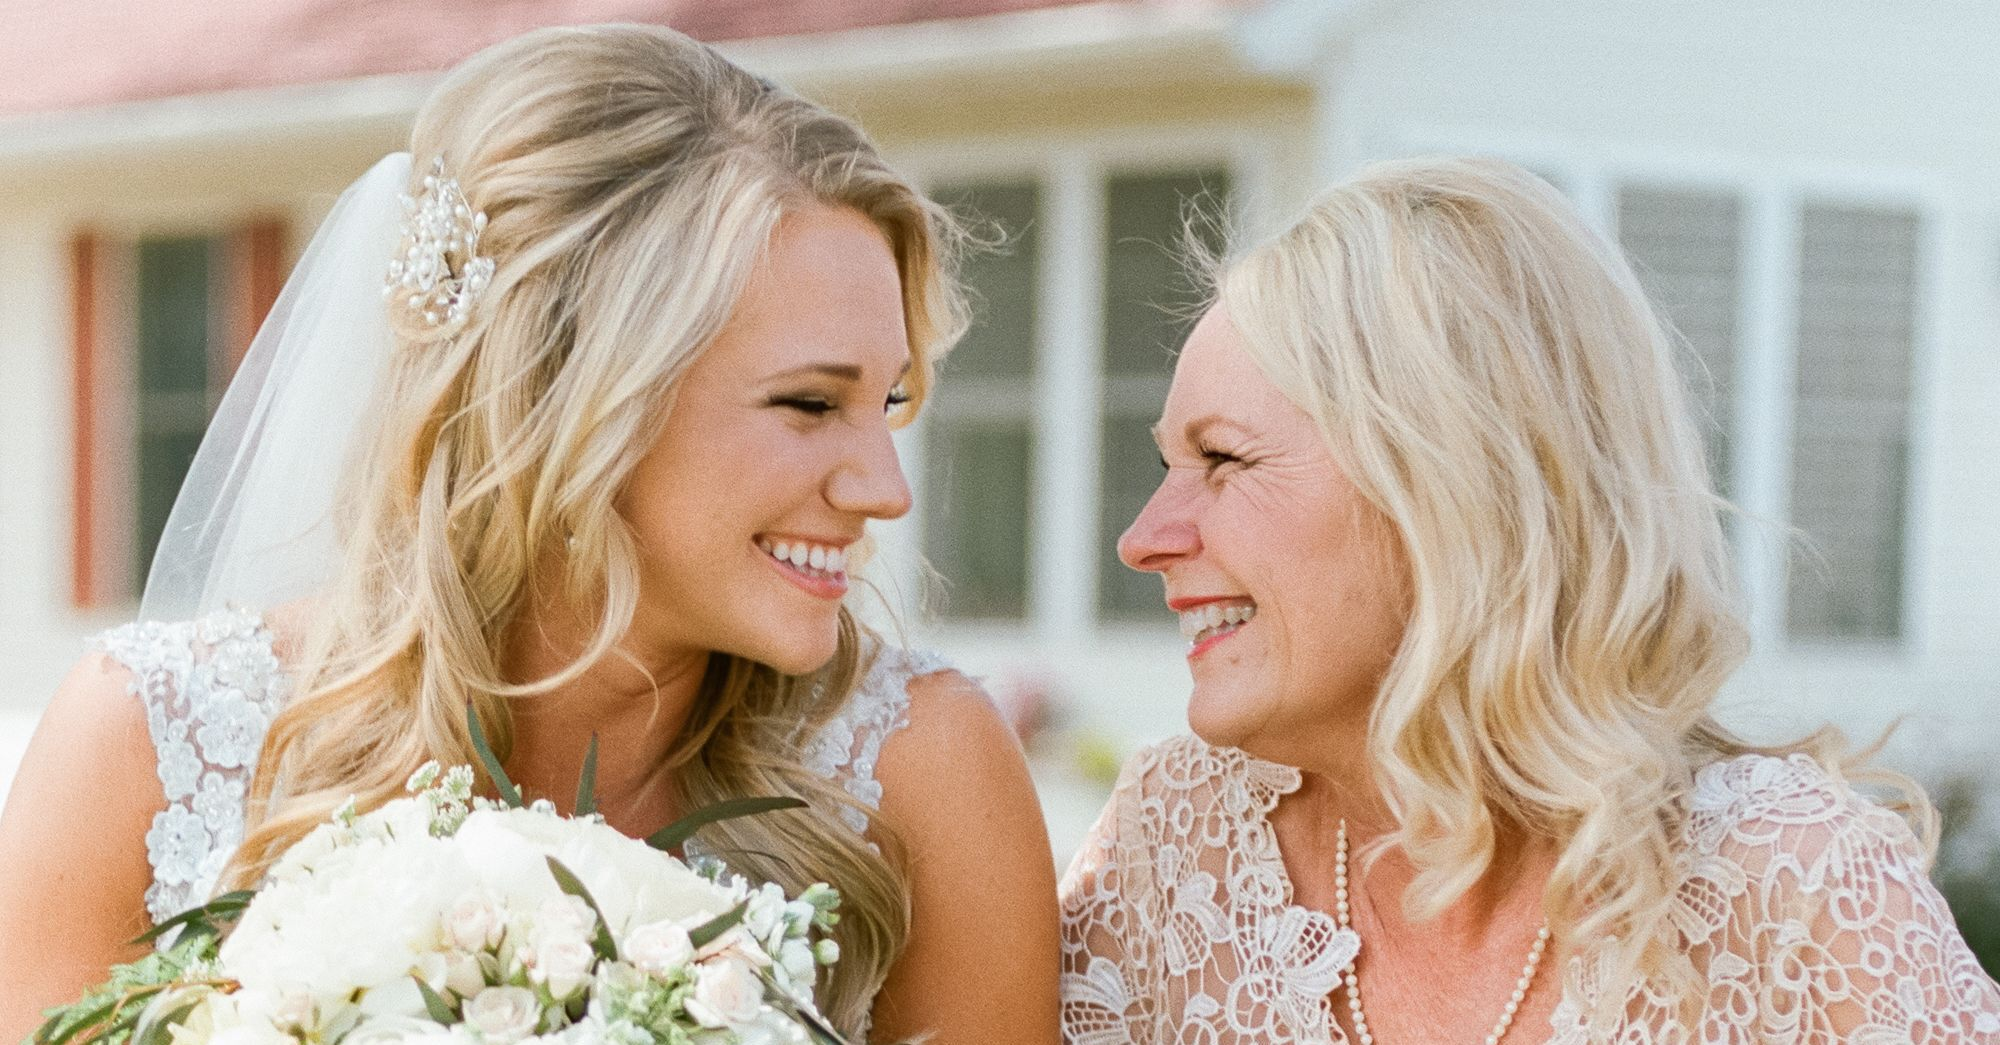 11 Mother Of The Bride Duties In Detail